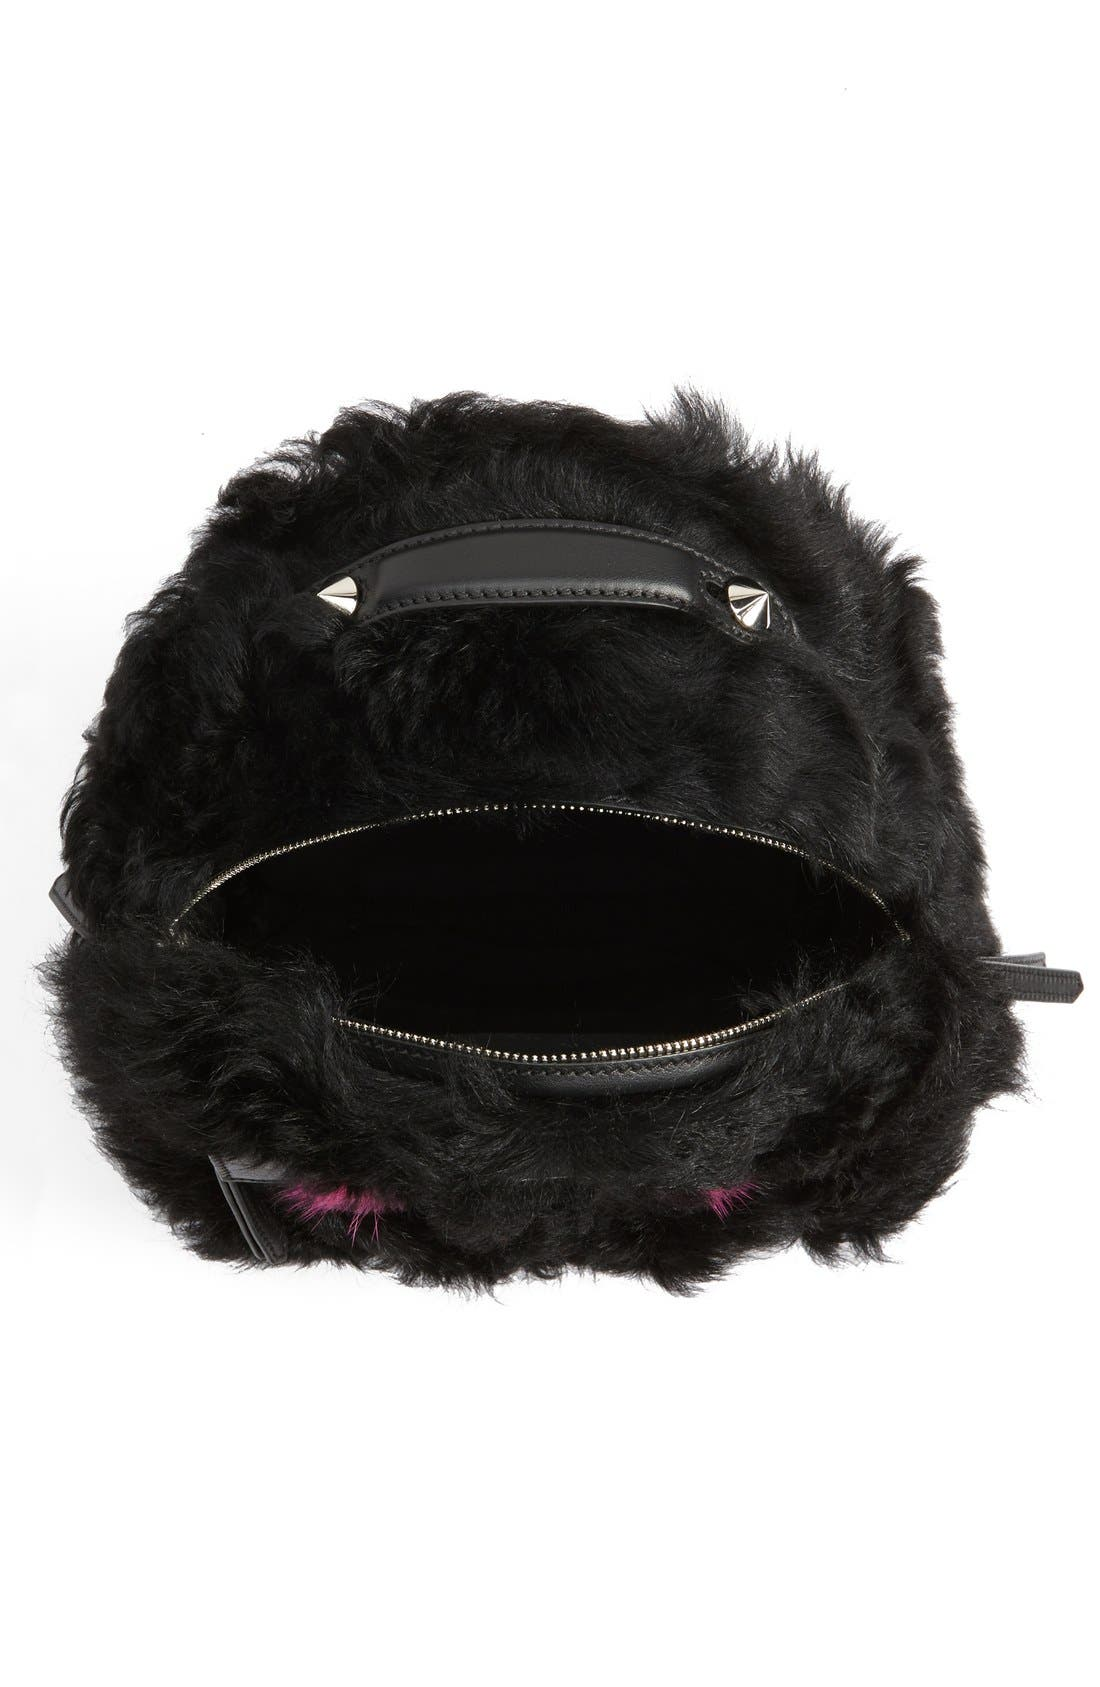 'Mini Monster' Genuine Shearling & Genuine Mink Fur Backpack,                             Alternate thumbnail 2, color,                             BLACK/ FUCHSIA / PALLADIUM